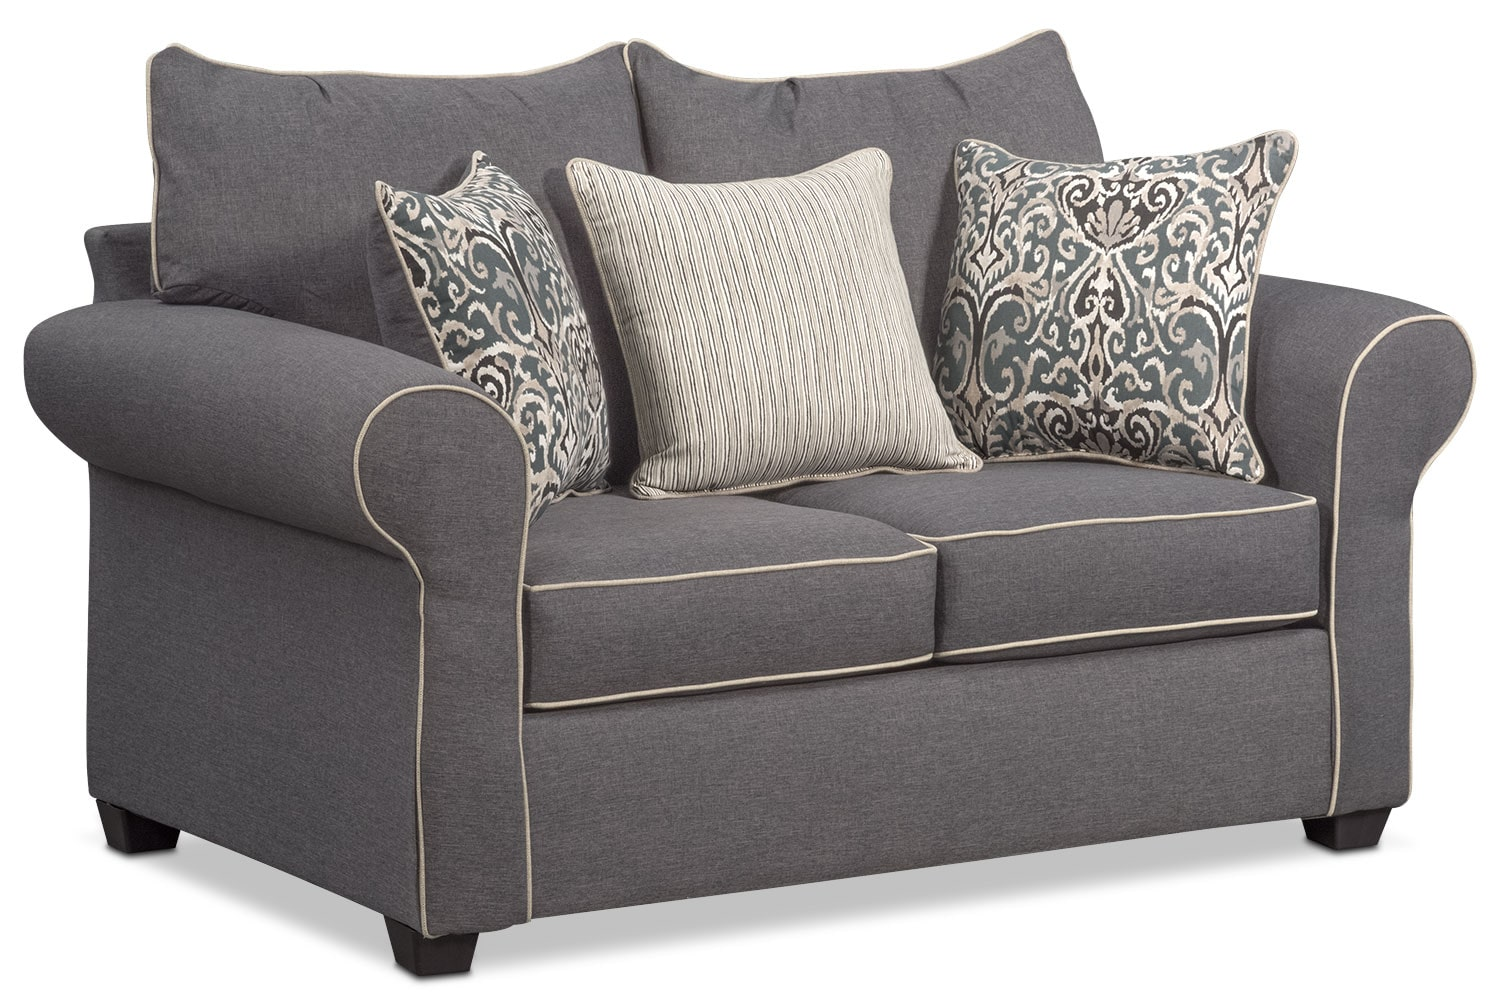 Couch Chair Carla Sofa Loveseat And Accent Chair Set Gray Value